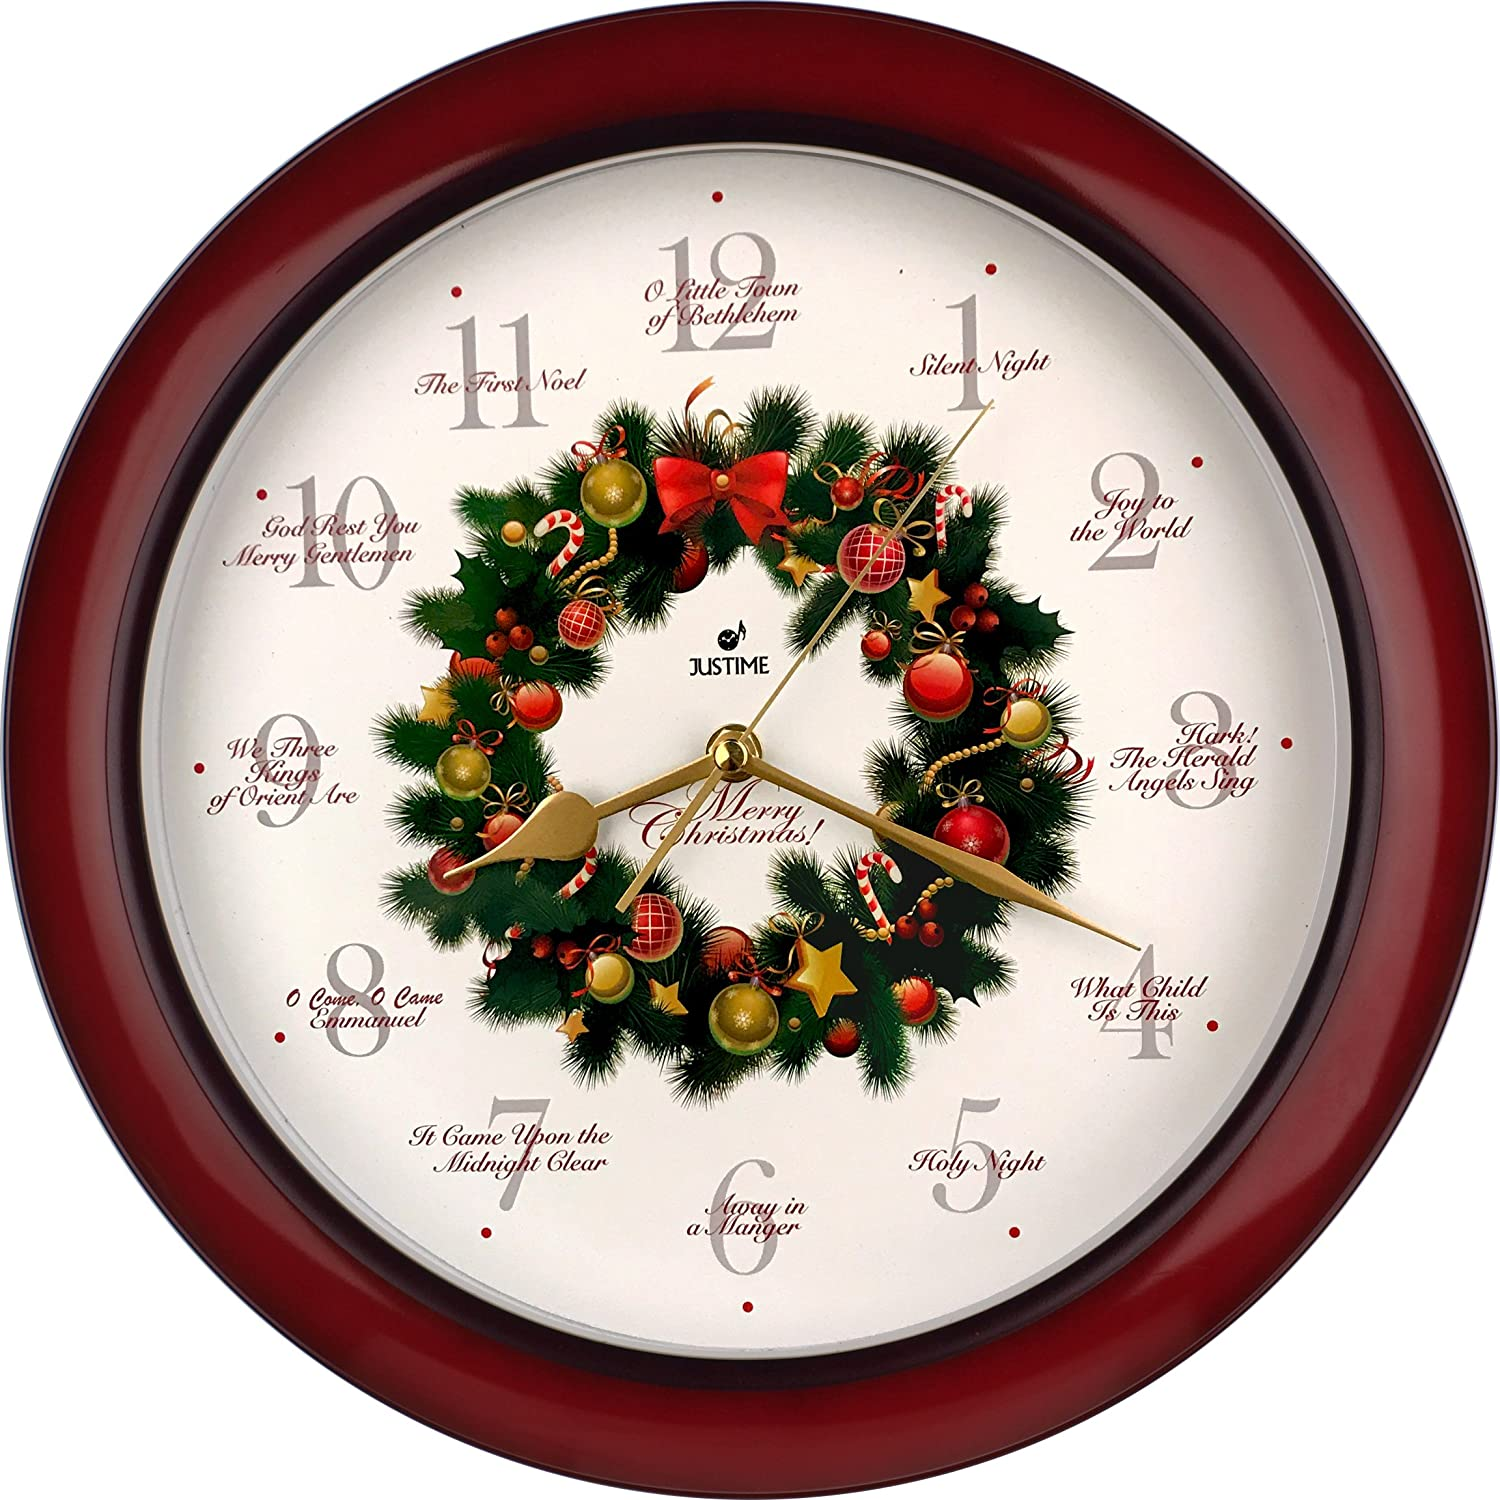 Amazon elegant 14 inch 12 song of carols of christmas wreath amazon elegant 14 inch 12 song of carols of christmas wreath melody wall clock sweep silent quartz home wall deco clock wr red home kitchen amipublicfo Images